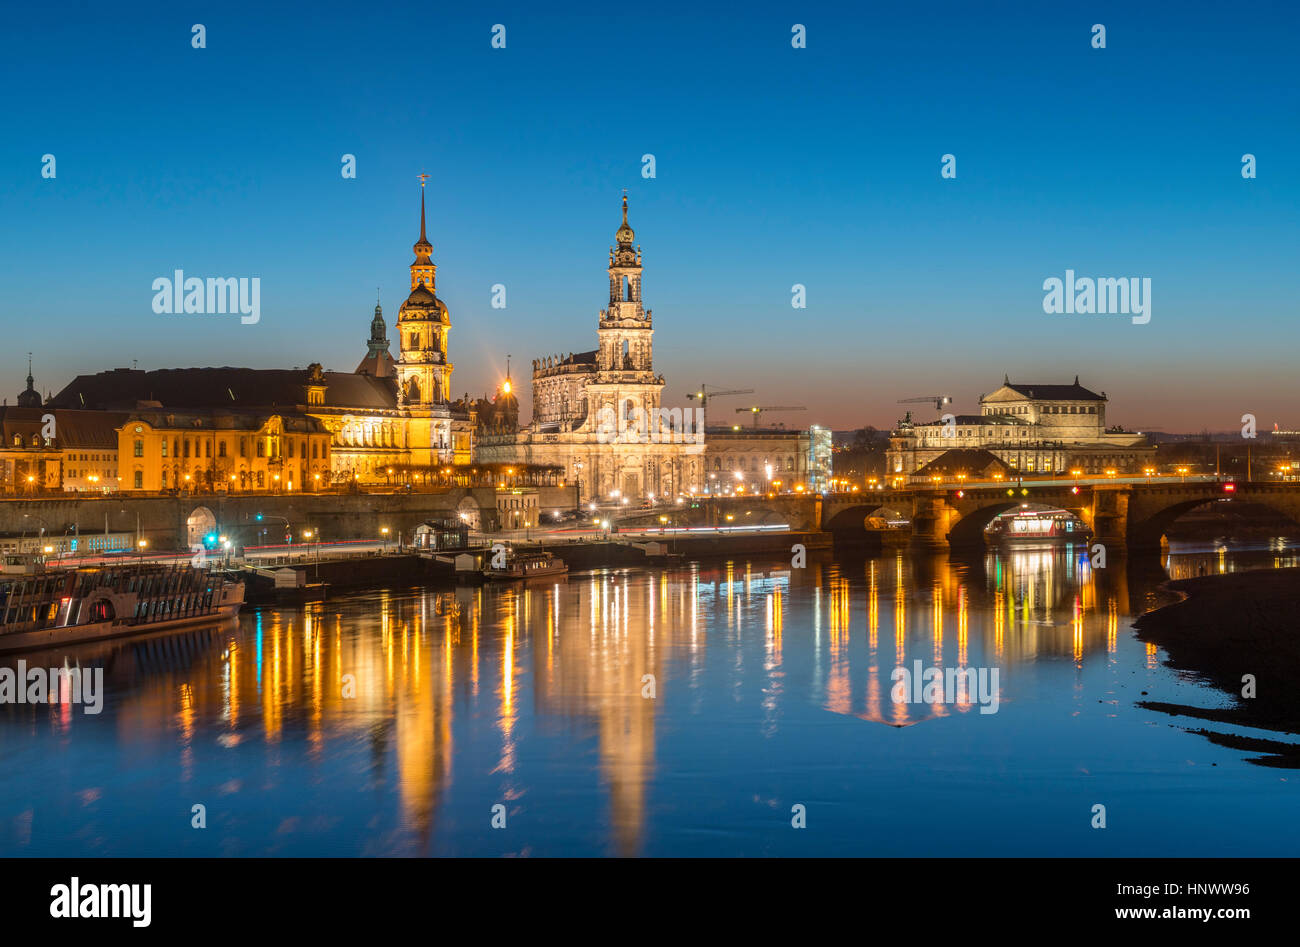 Night skyline of city of Dresden and Elbe River in Saxony, Germany. - Stock Image